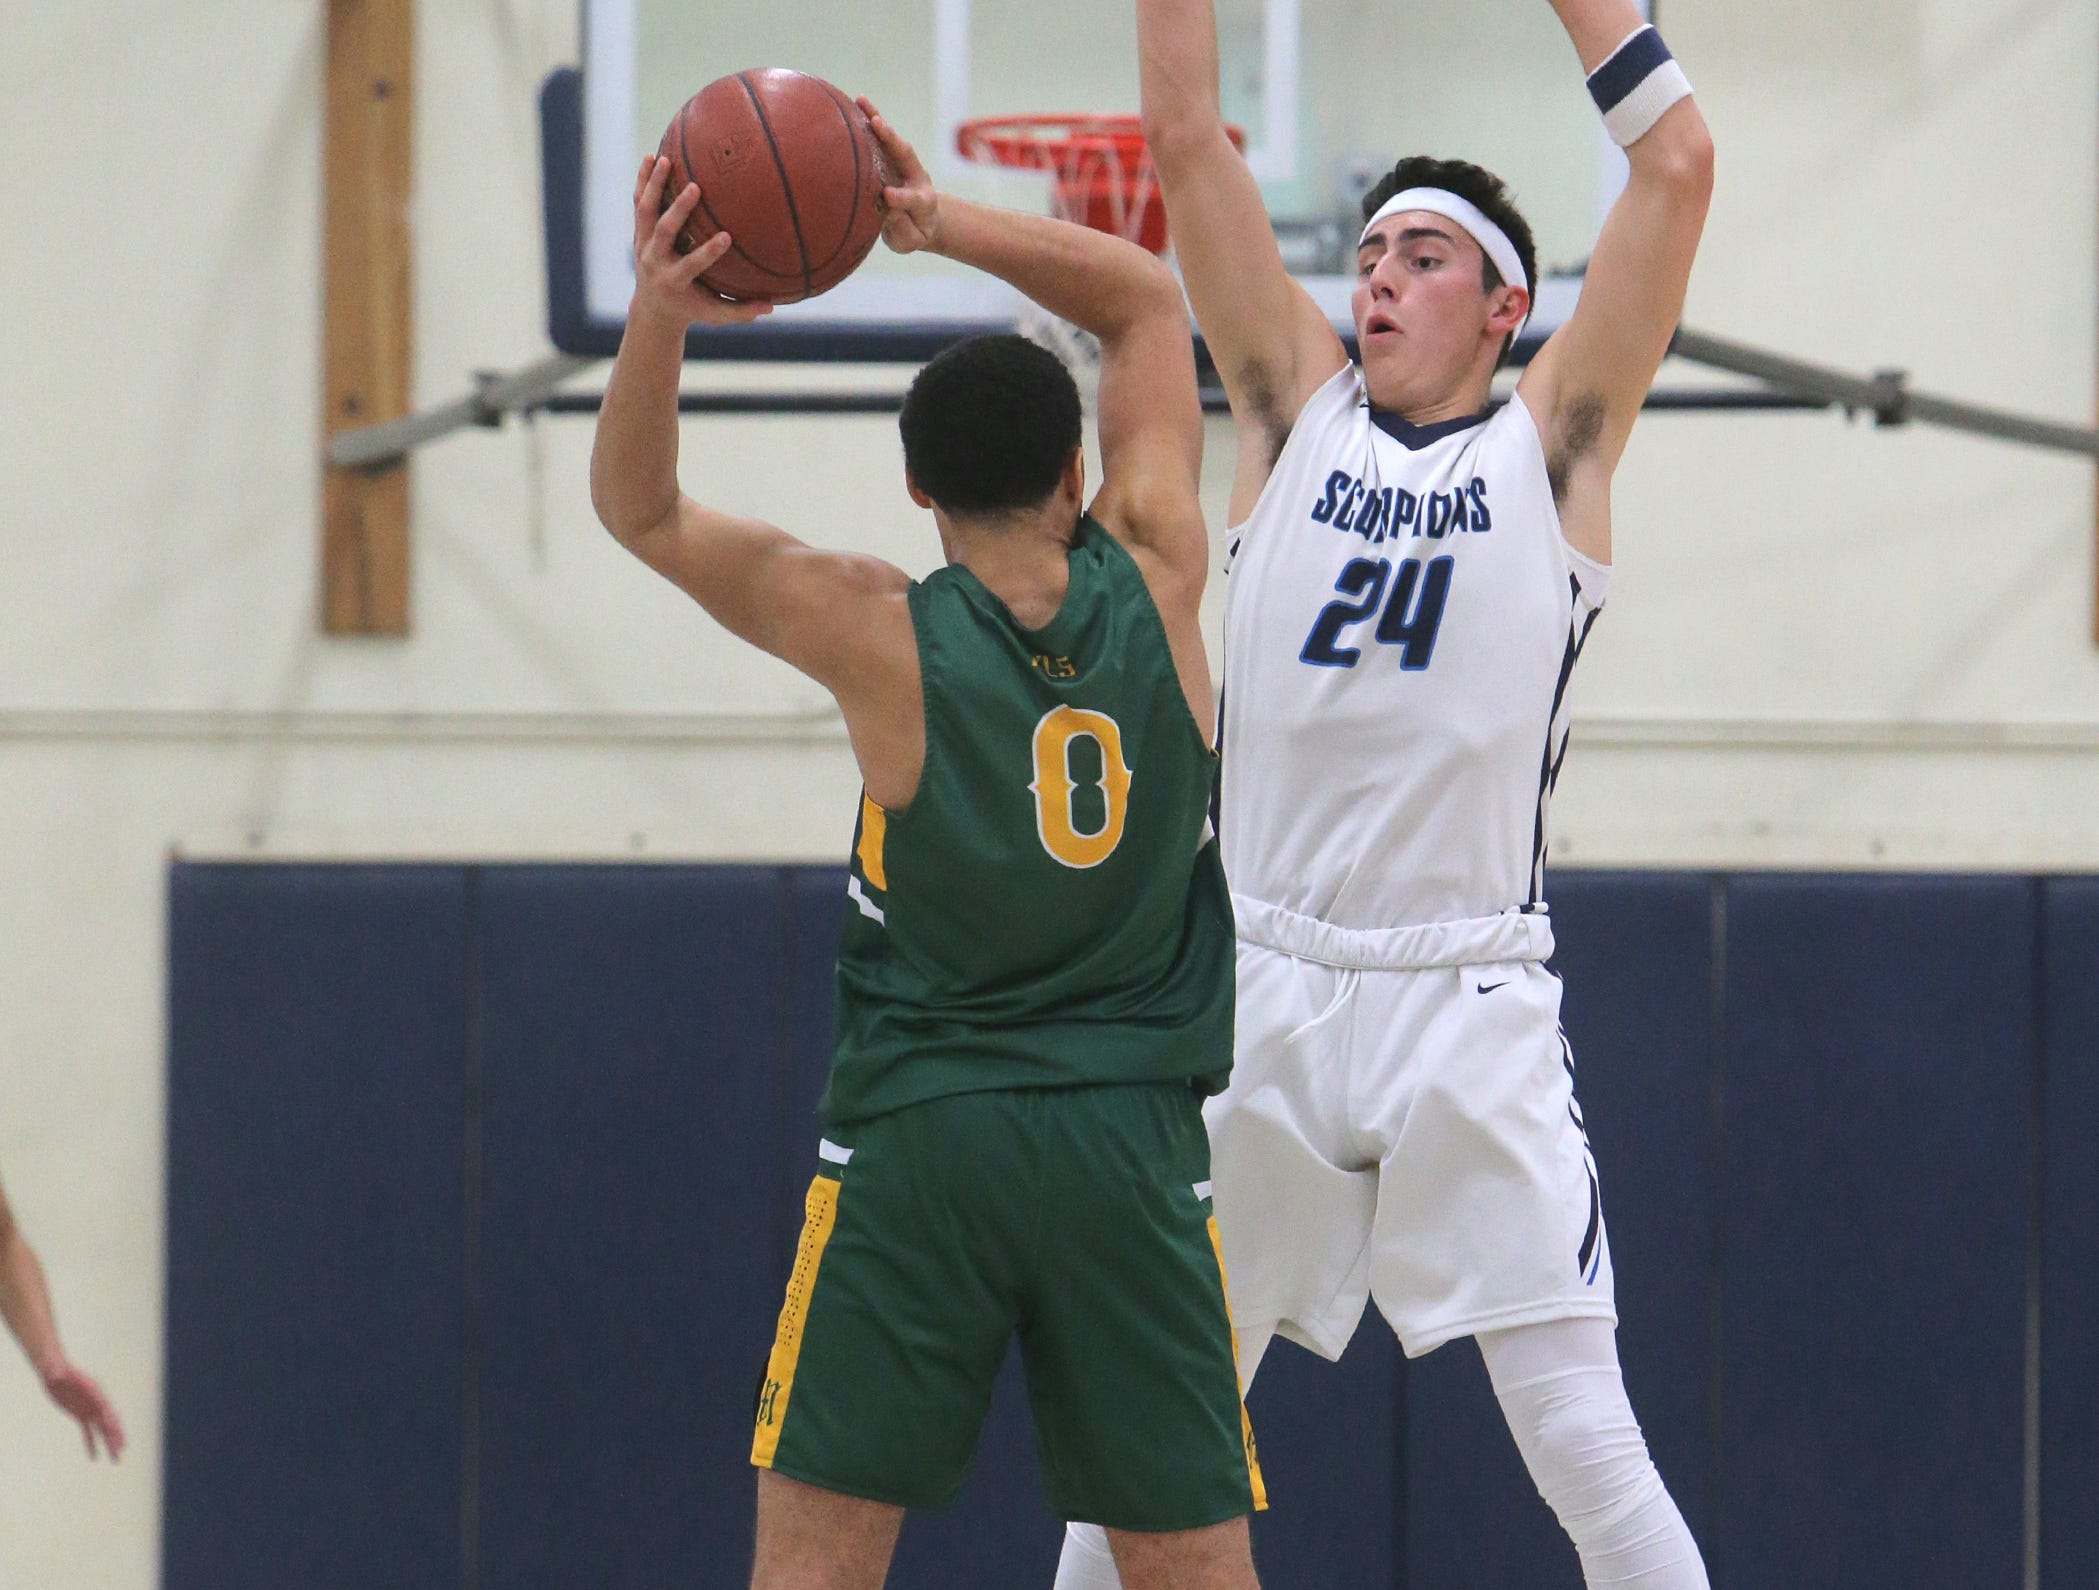 Moorpark's Drake London is defended by Camarillo's Jaime Jaquez Jr. during Friday night's Coastal Canyon League game at Camarillo. The USC-bound London and the UCLA-bound Jaquez each had 34 points in the Camarillo's 82-68 victory.